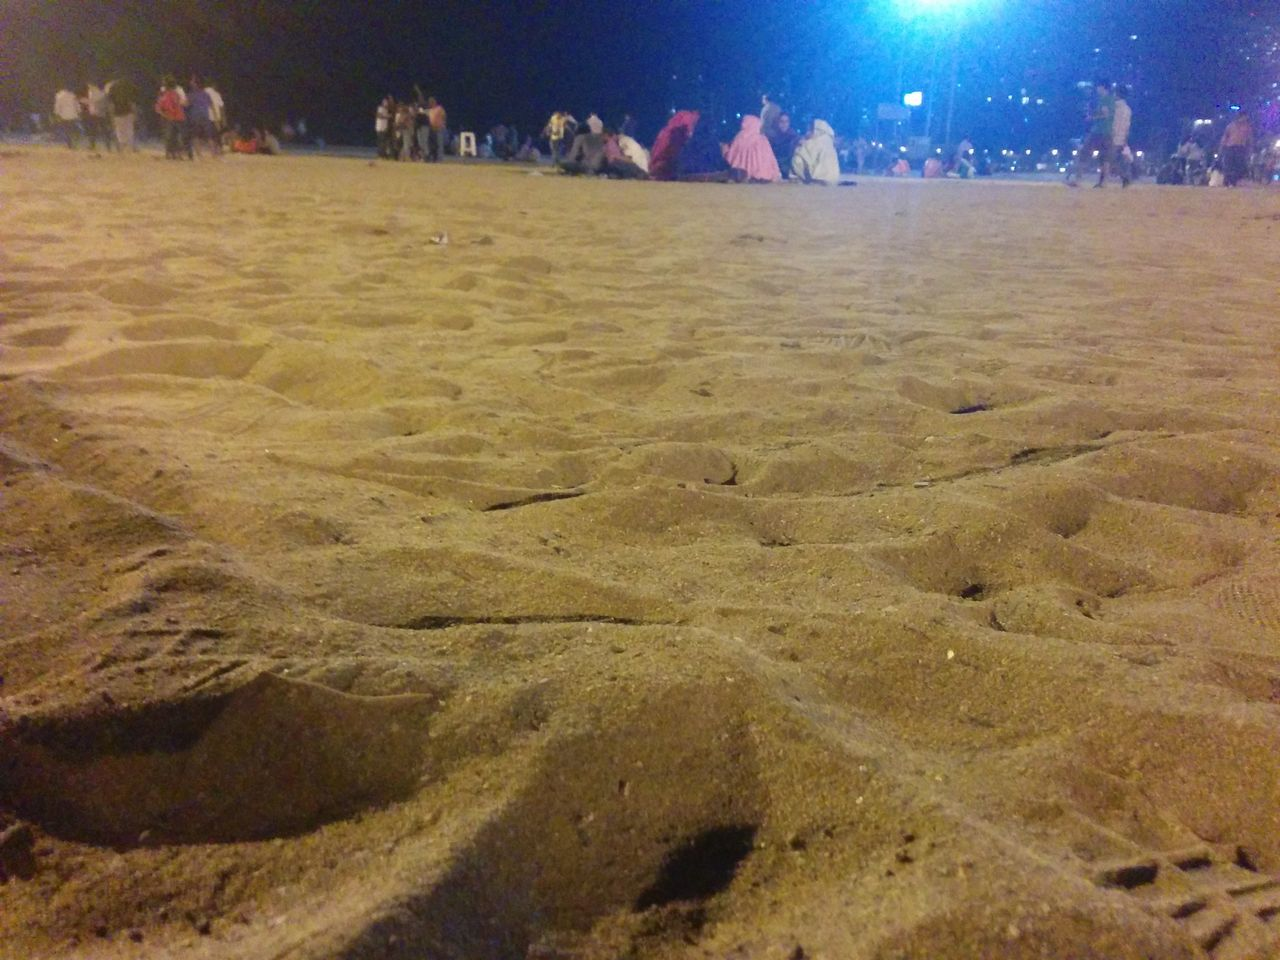 large group of people, sand, beach, night, men, real people, leisure activity, women, outdoors, illuminated, nature, crowd, people, adult, adults only